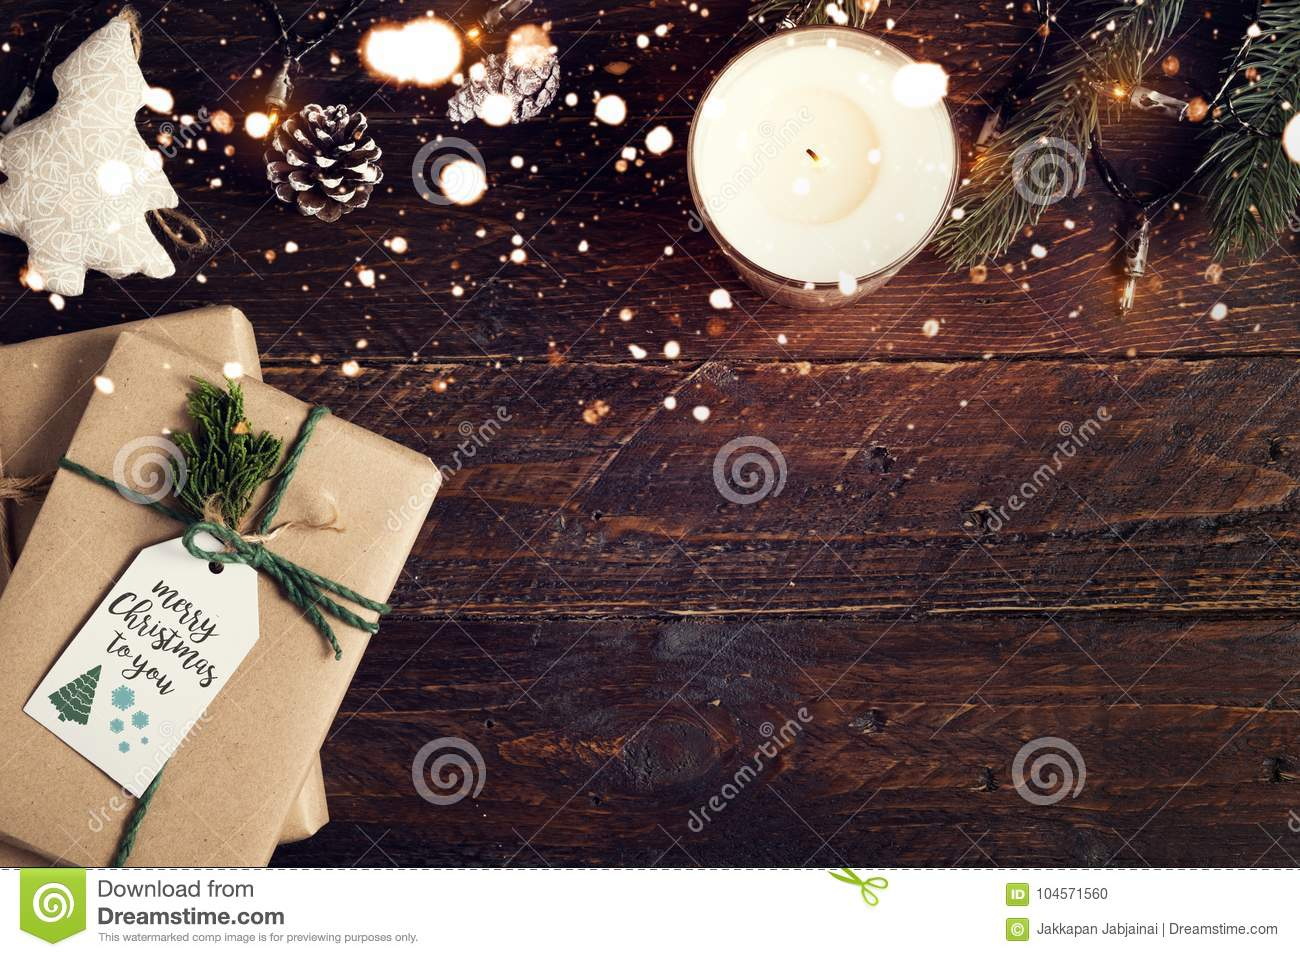 Christmas present gifts box and rustic decoration on vintage wooden background with snowflake